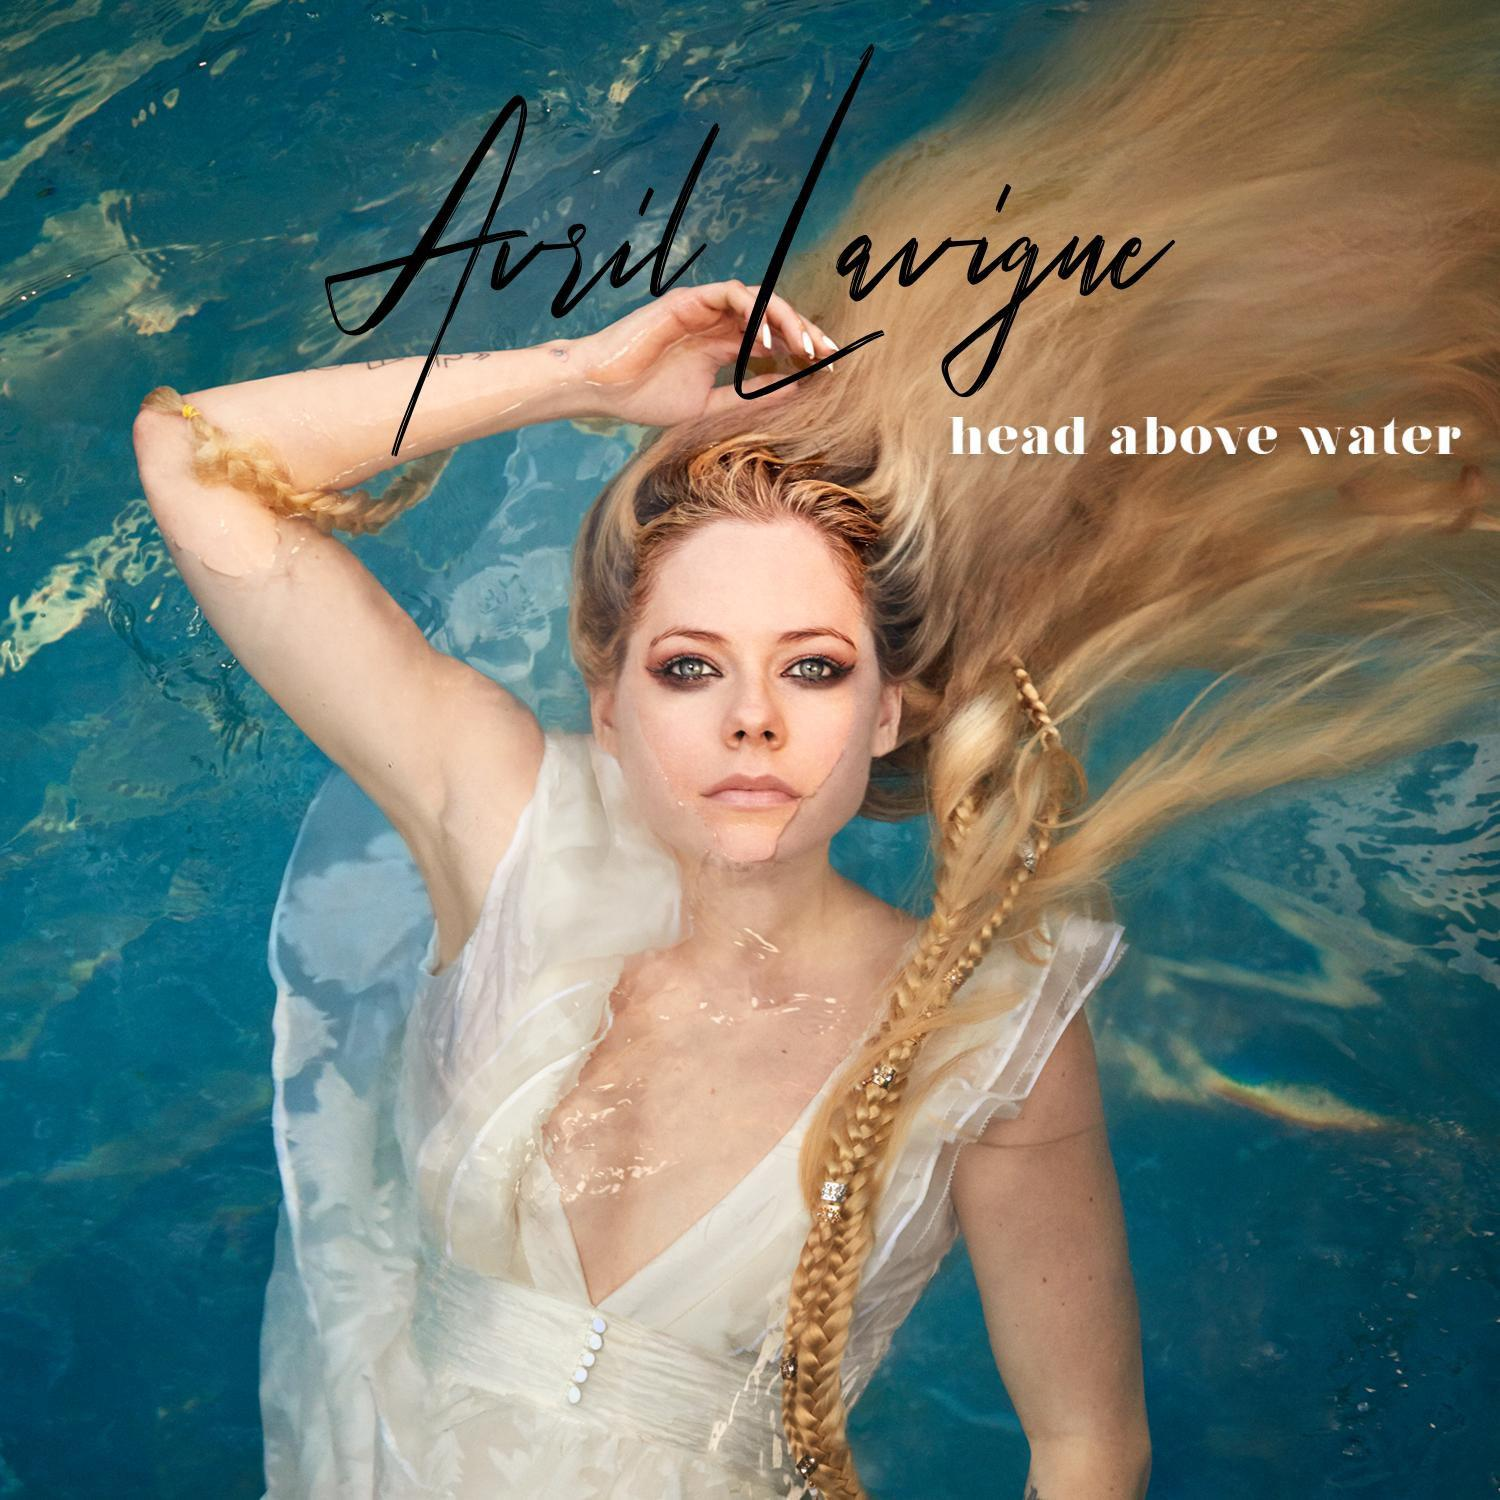 Avril Lavigne - Head Above Water 酵母归来